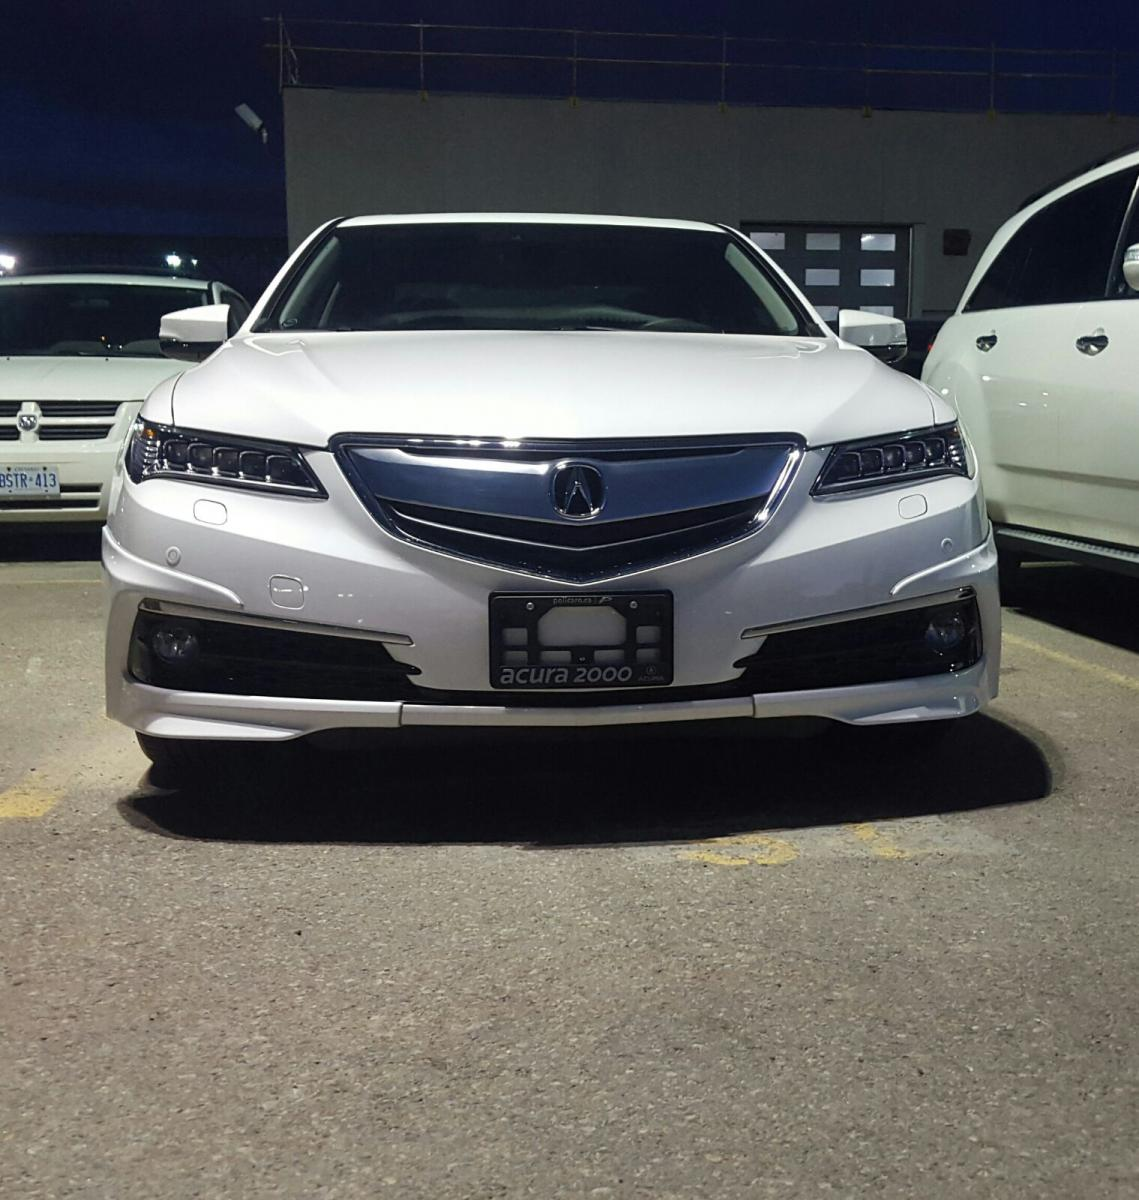 New Acura Tlx: Pics Of My New TLX